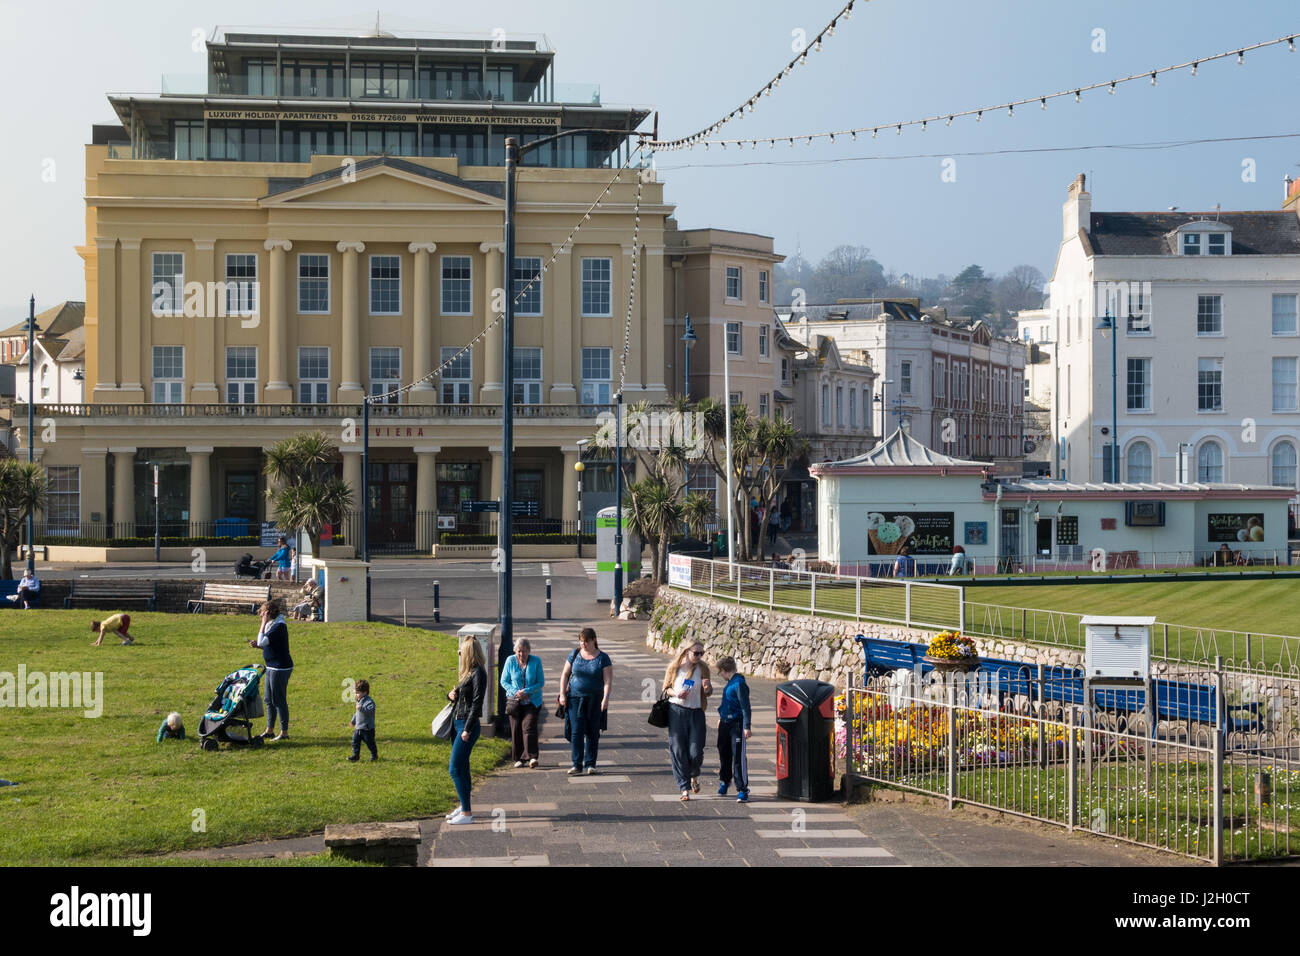 The Old Riviera Cinema In Teignmouth Devon UK With People Walking